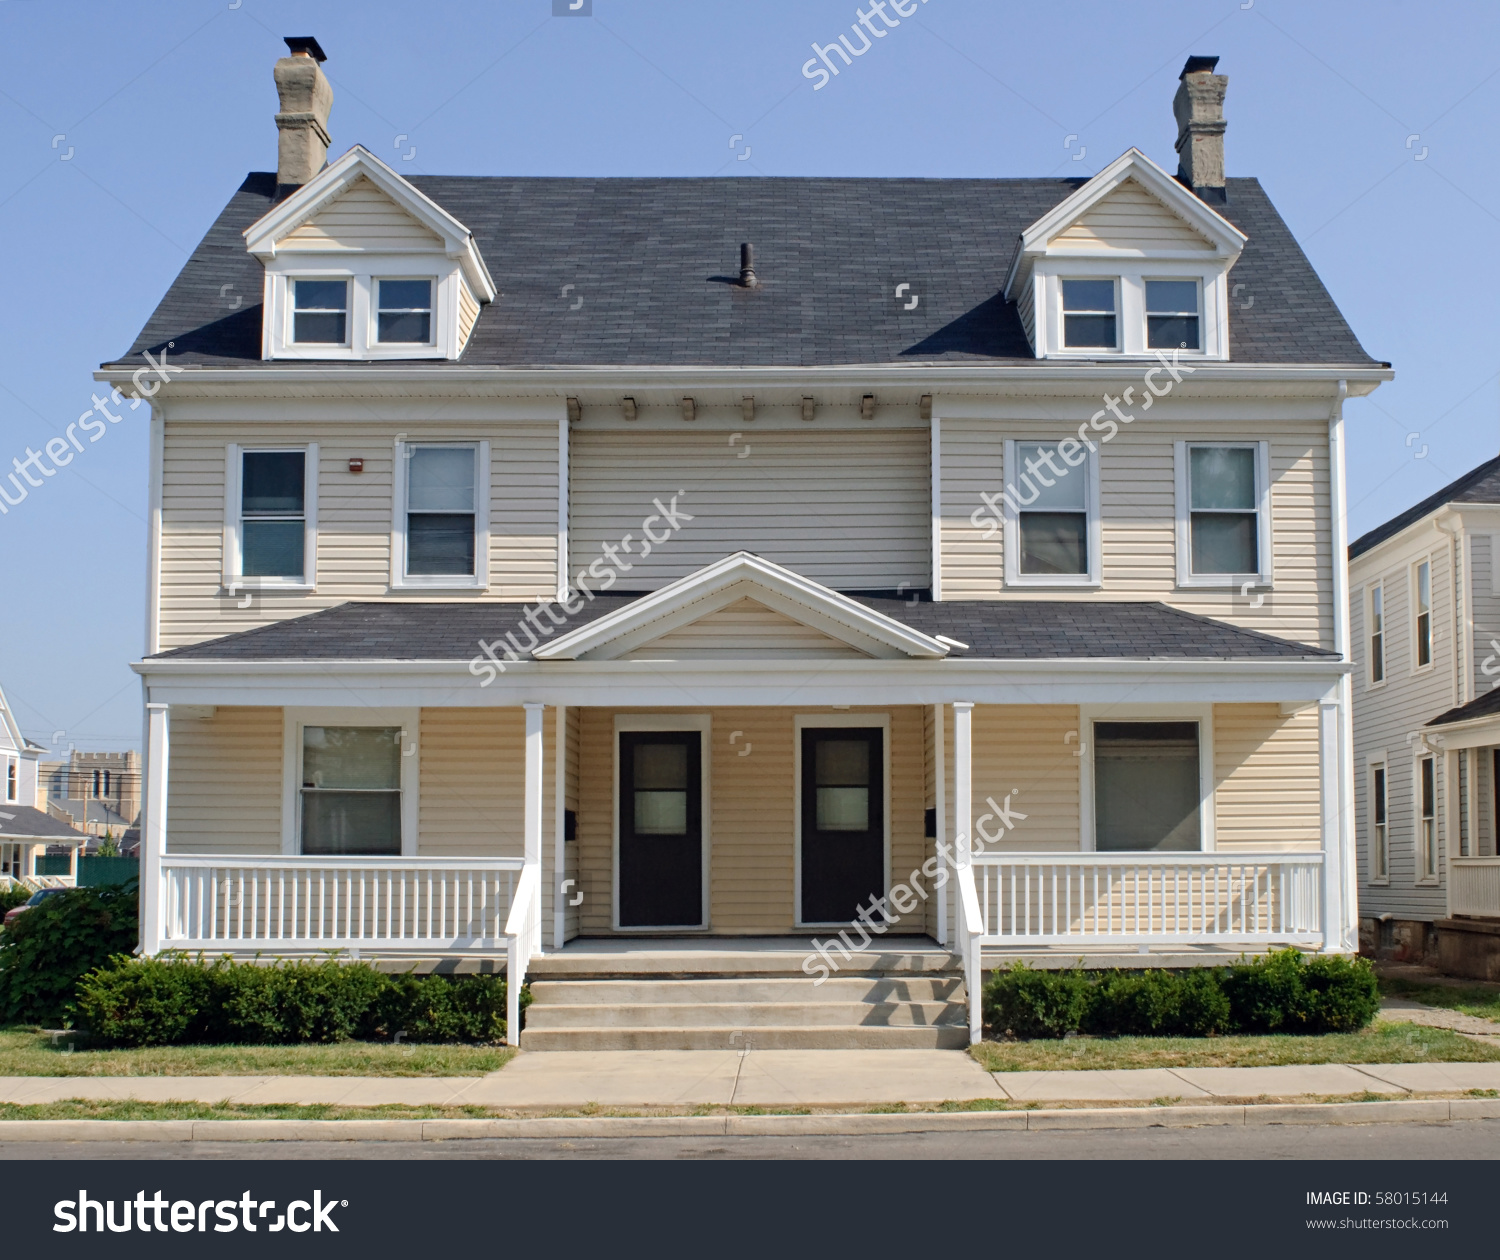 Typical Midwest Duplex House Stock Photo 58015144.